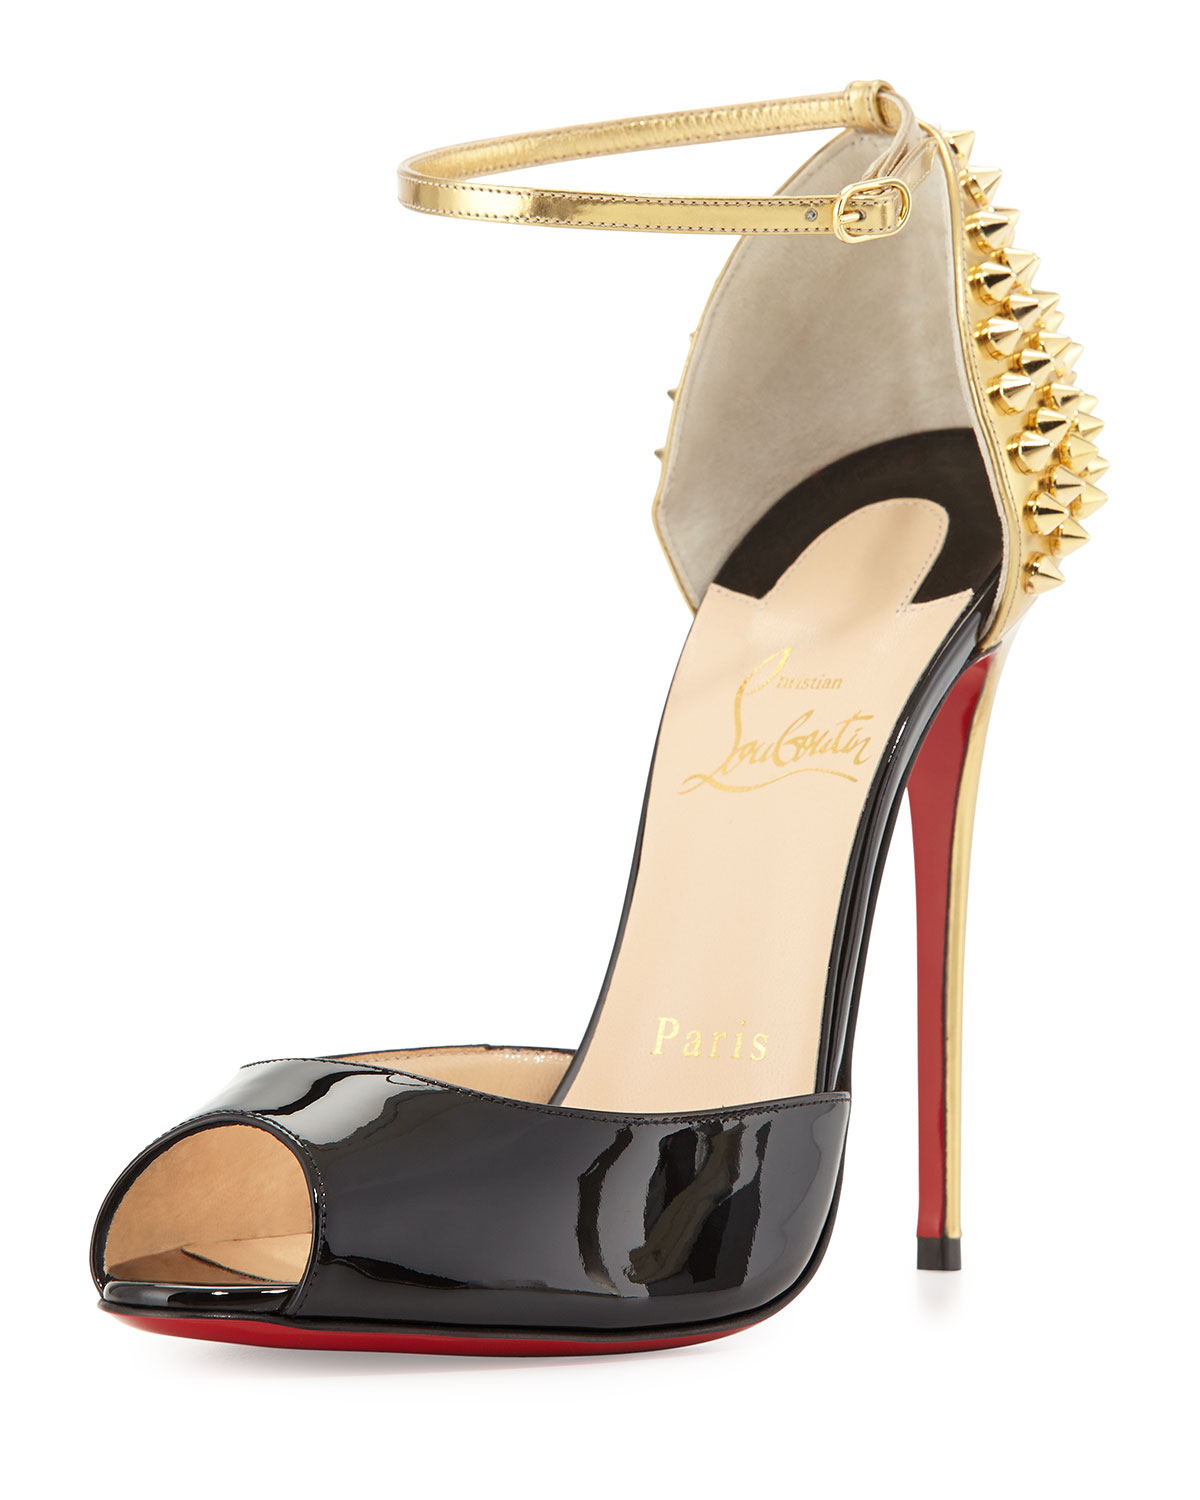 new arrival 56eee 09ceb christian louboutin baila spike leather red sole pump ...